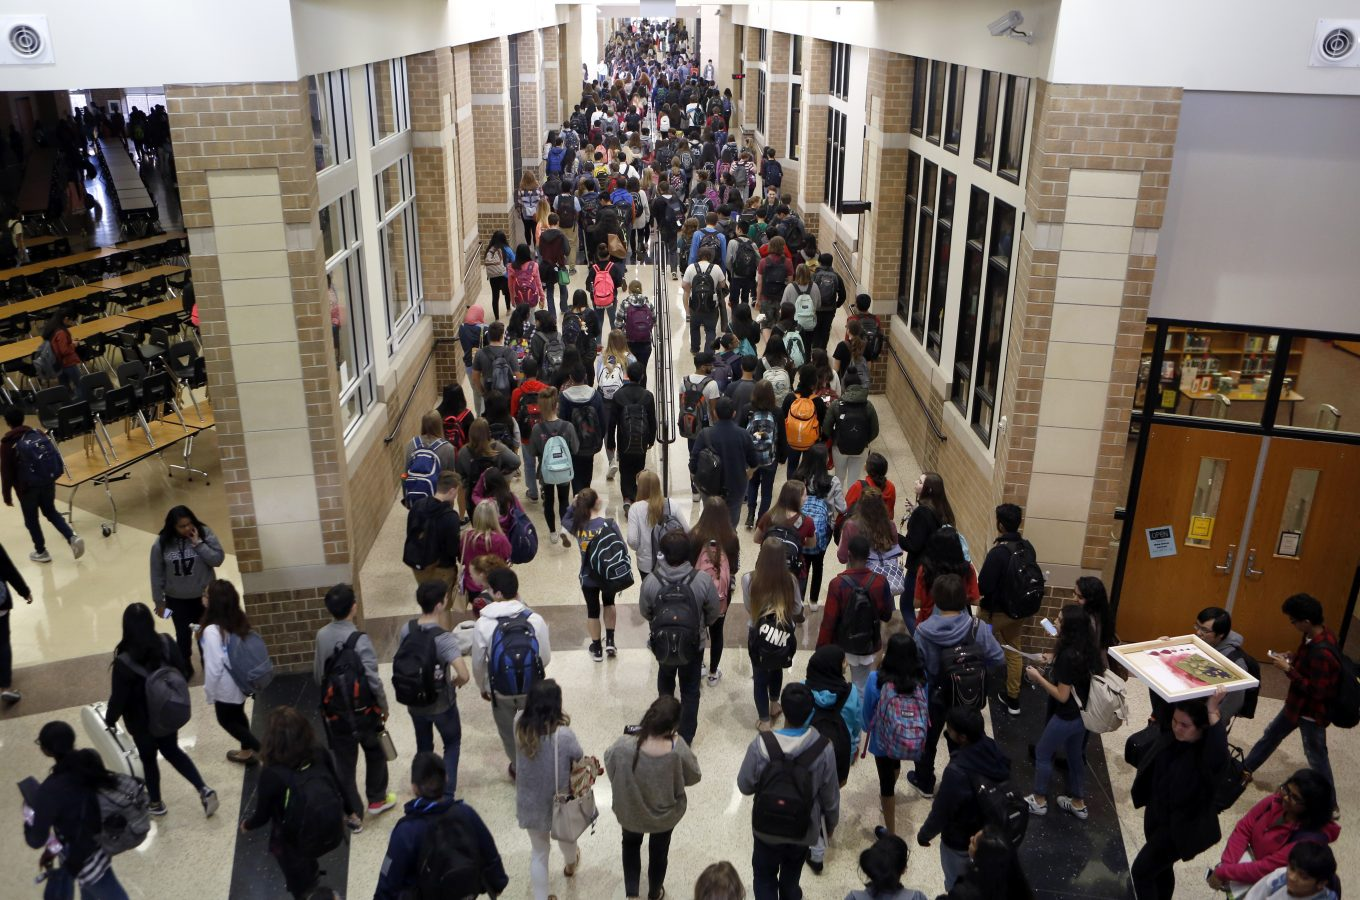 Students crowd the hallway after the last bell rings at Liberty High School in Frisco. Photo/Lara Solt